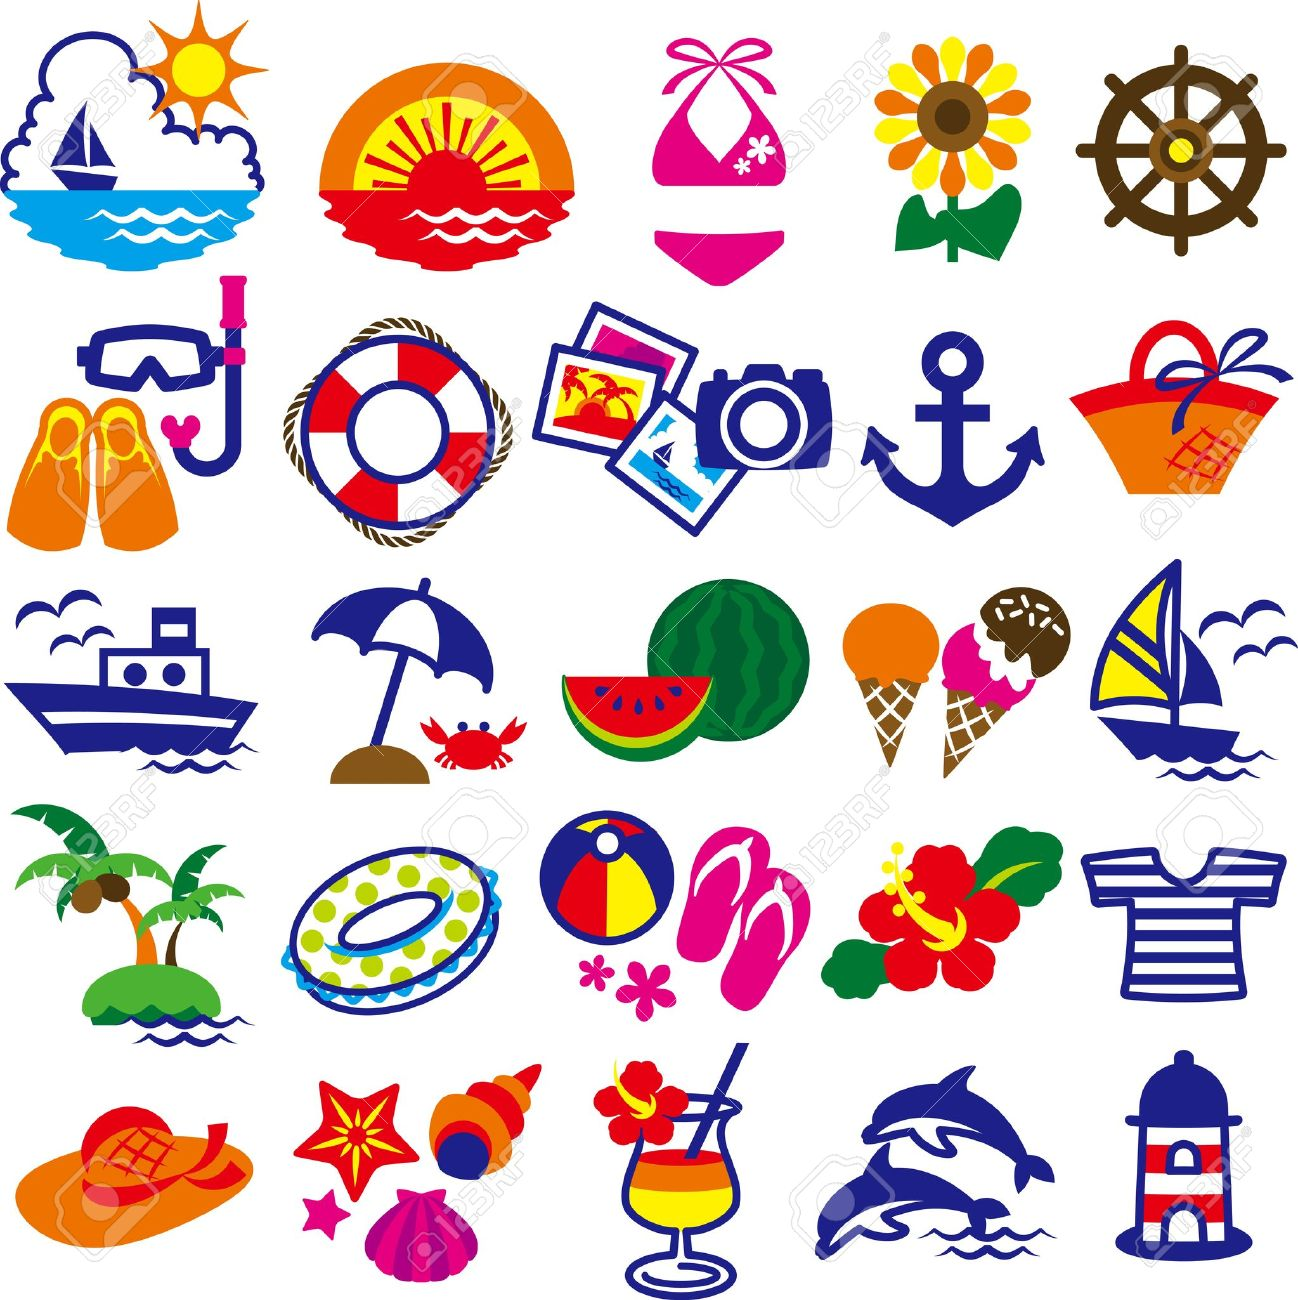 clip art summer royalty free cliparts vectors and stock rh 123rf com summer vector freepik summer vector art